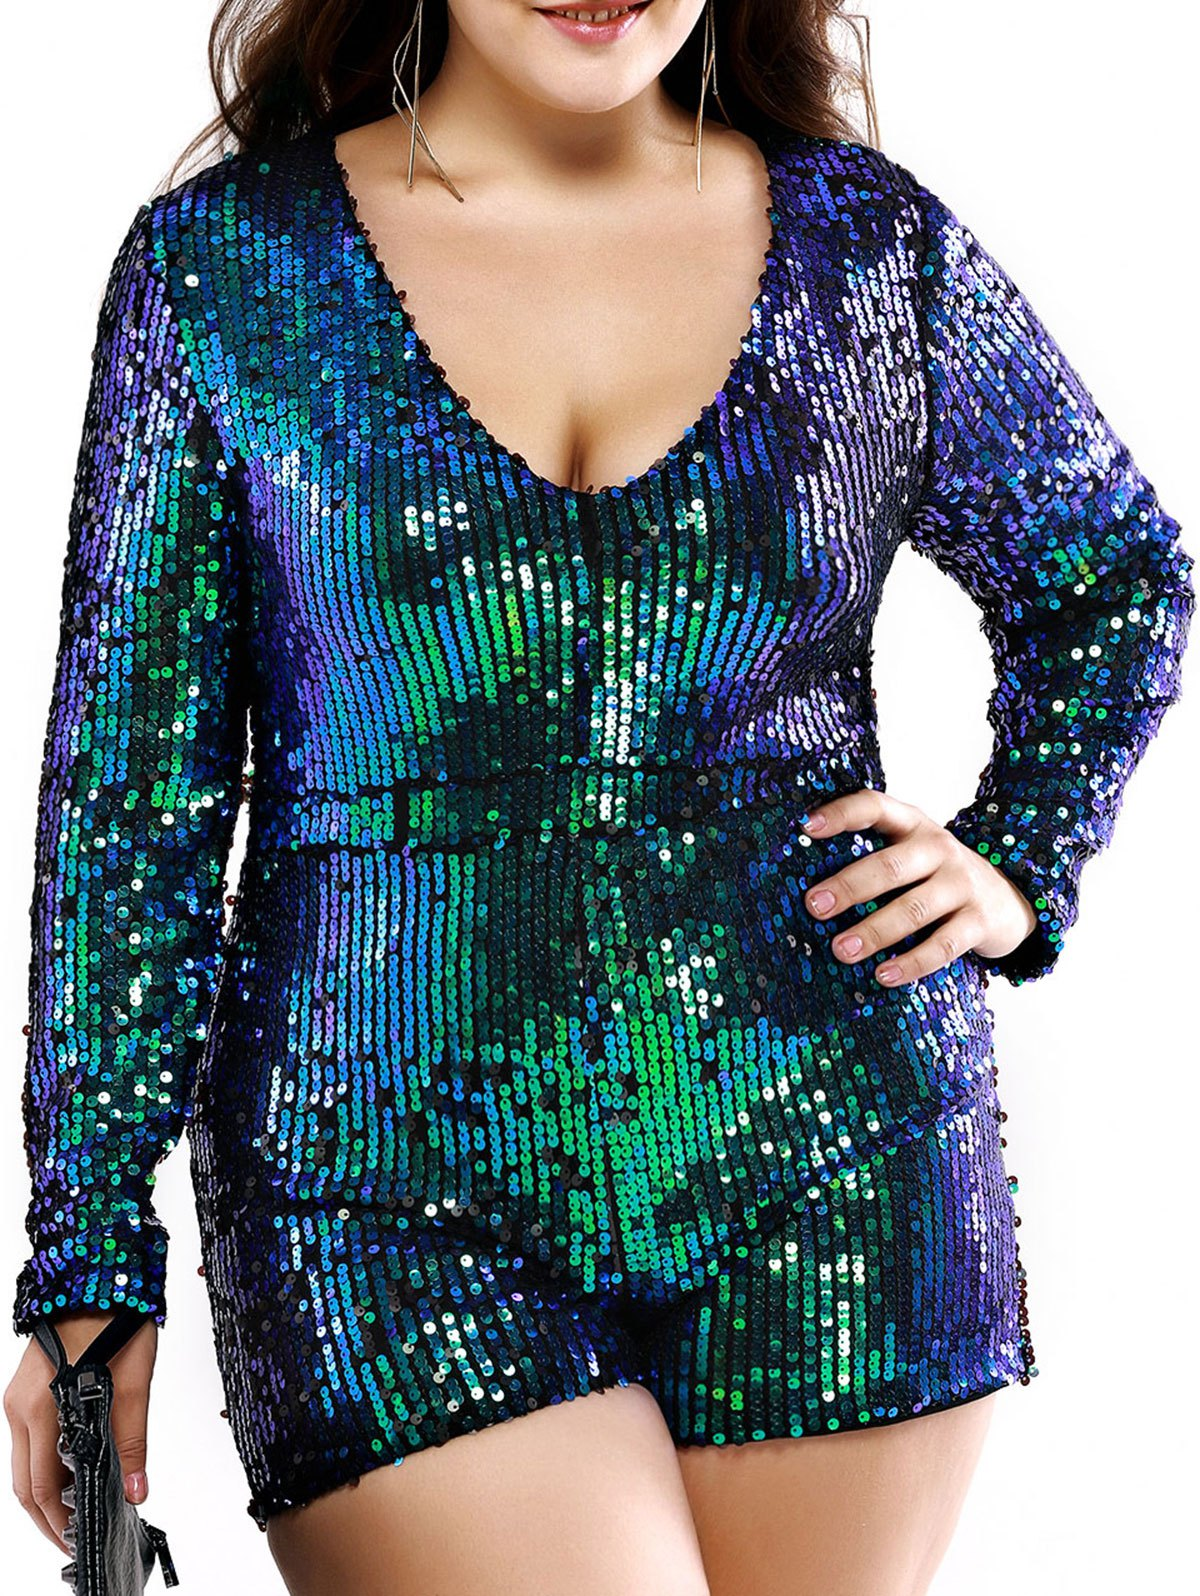 Plus Size Stylish Plunging Neck Sequined Romper